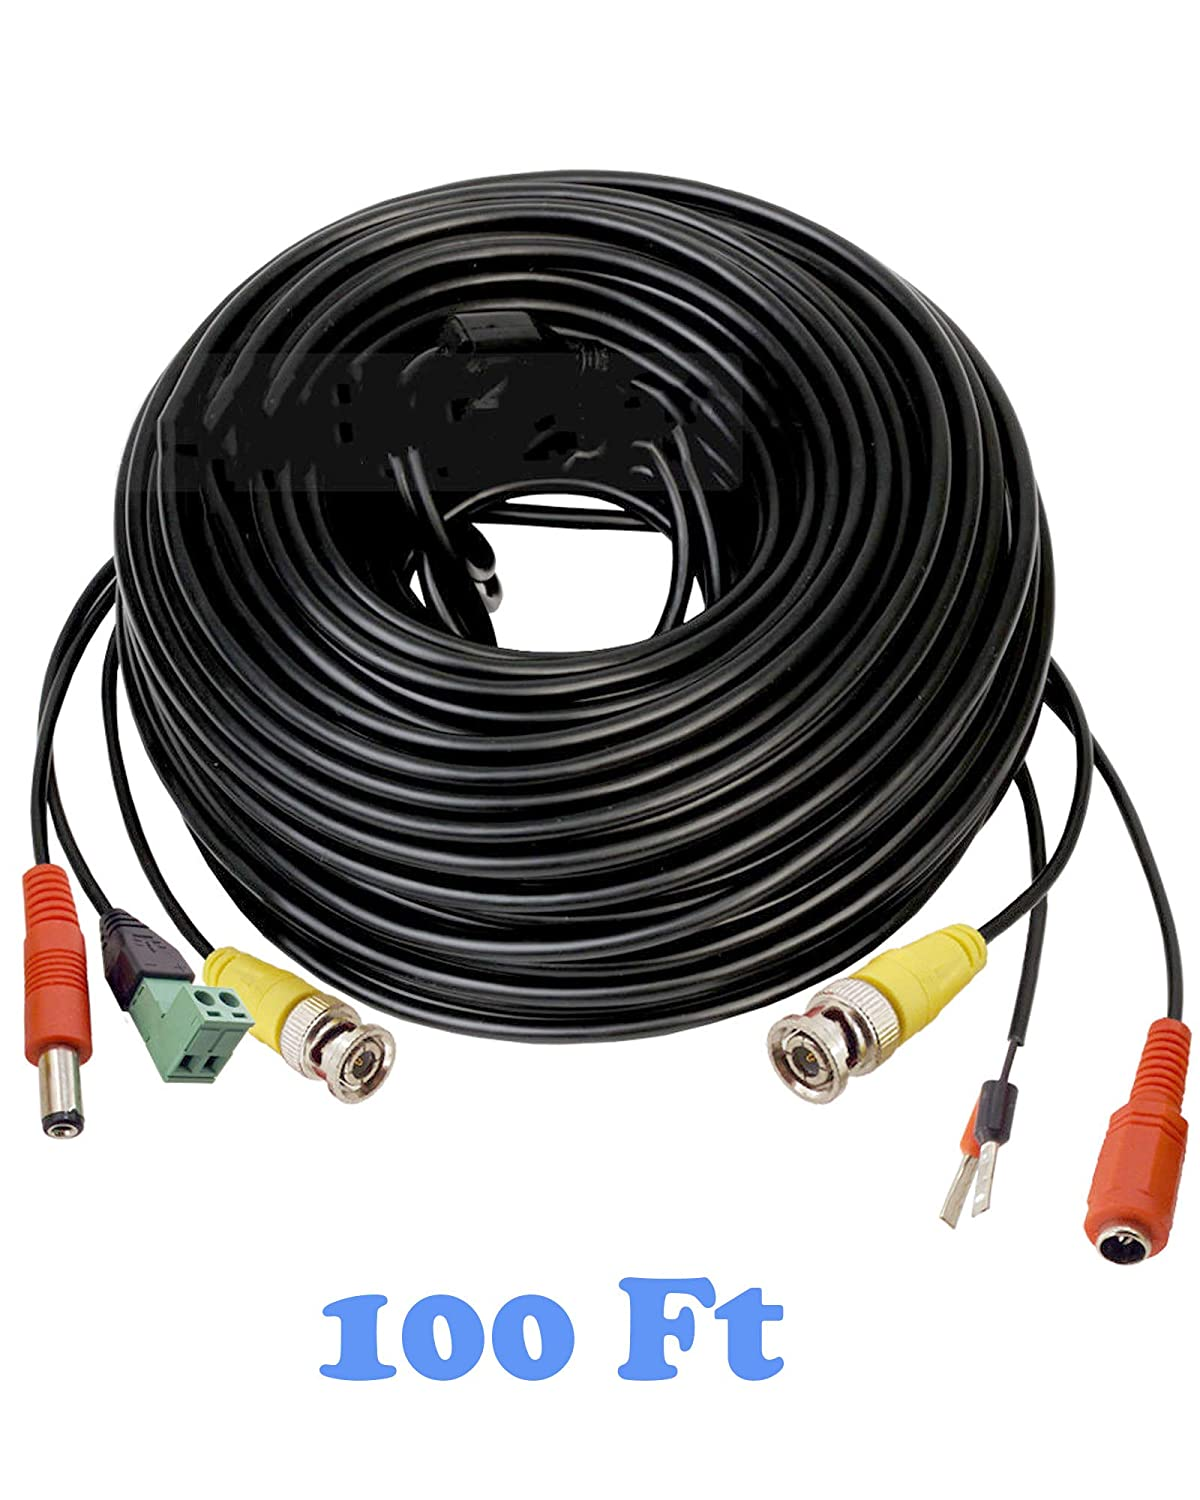 100Ft PTZ Power Video & RS-485 Control Cable Professional Extension for All PTZ Cameras Models, Black